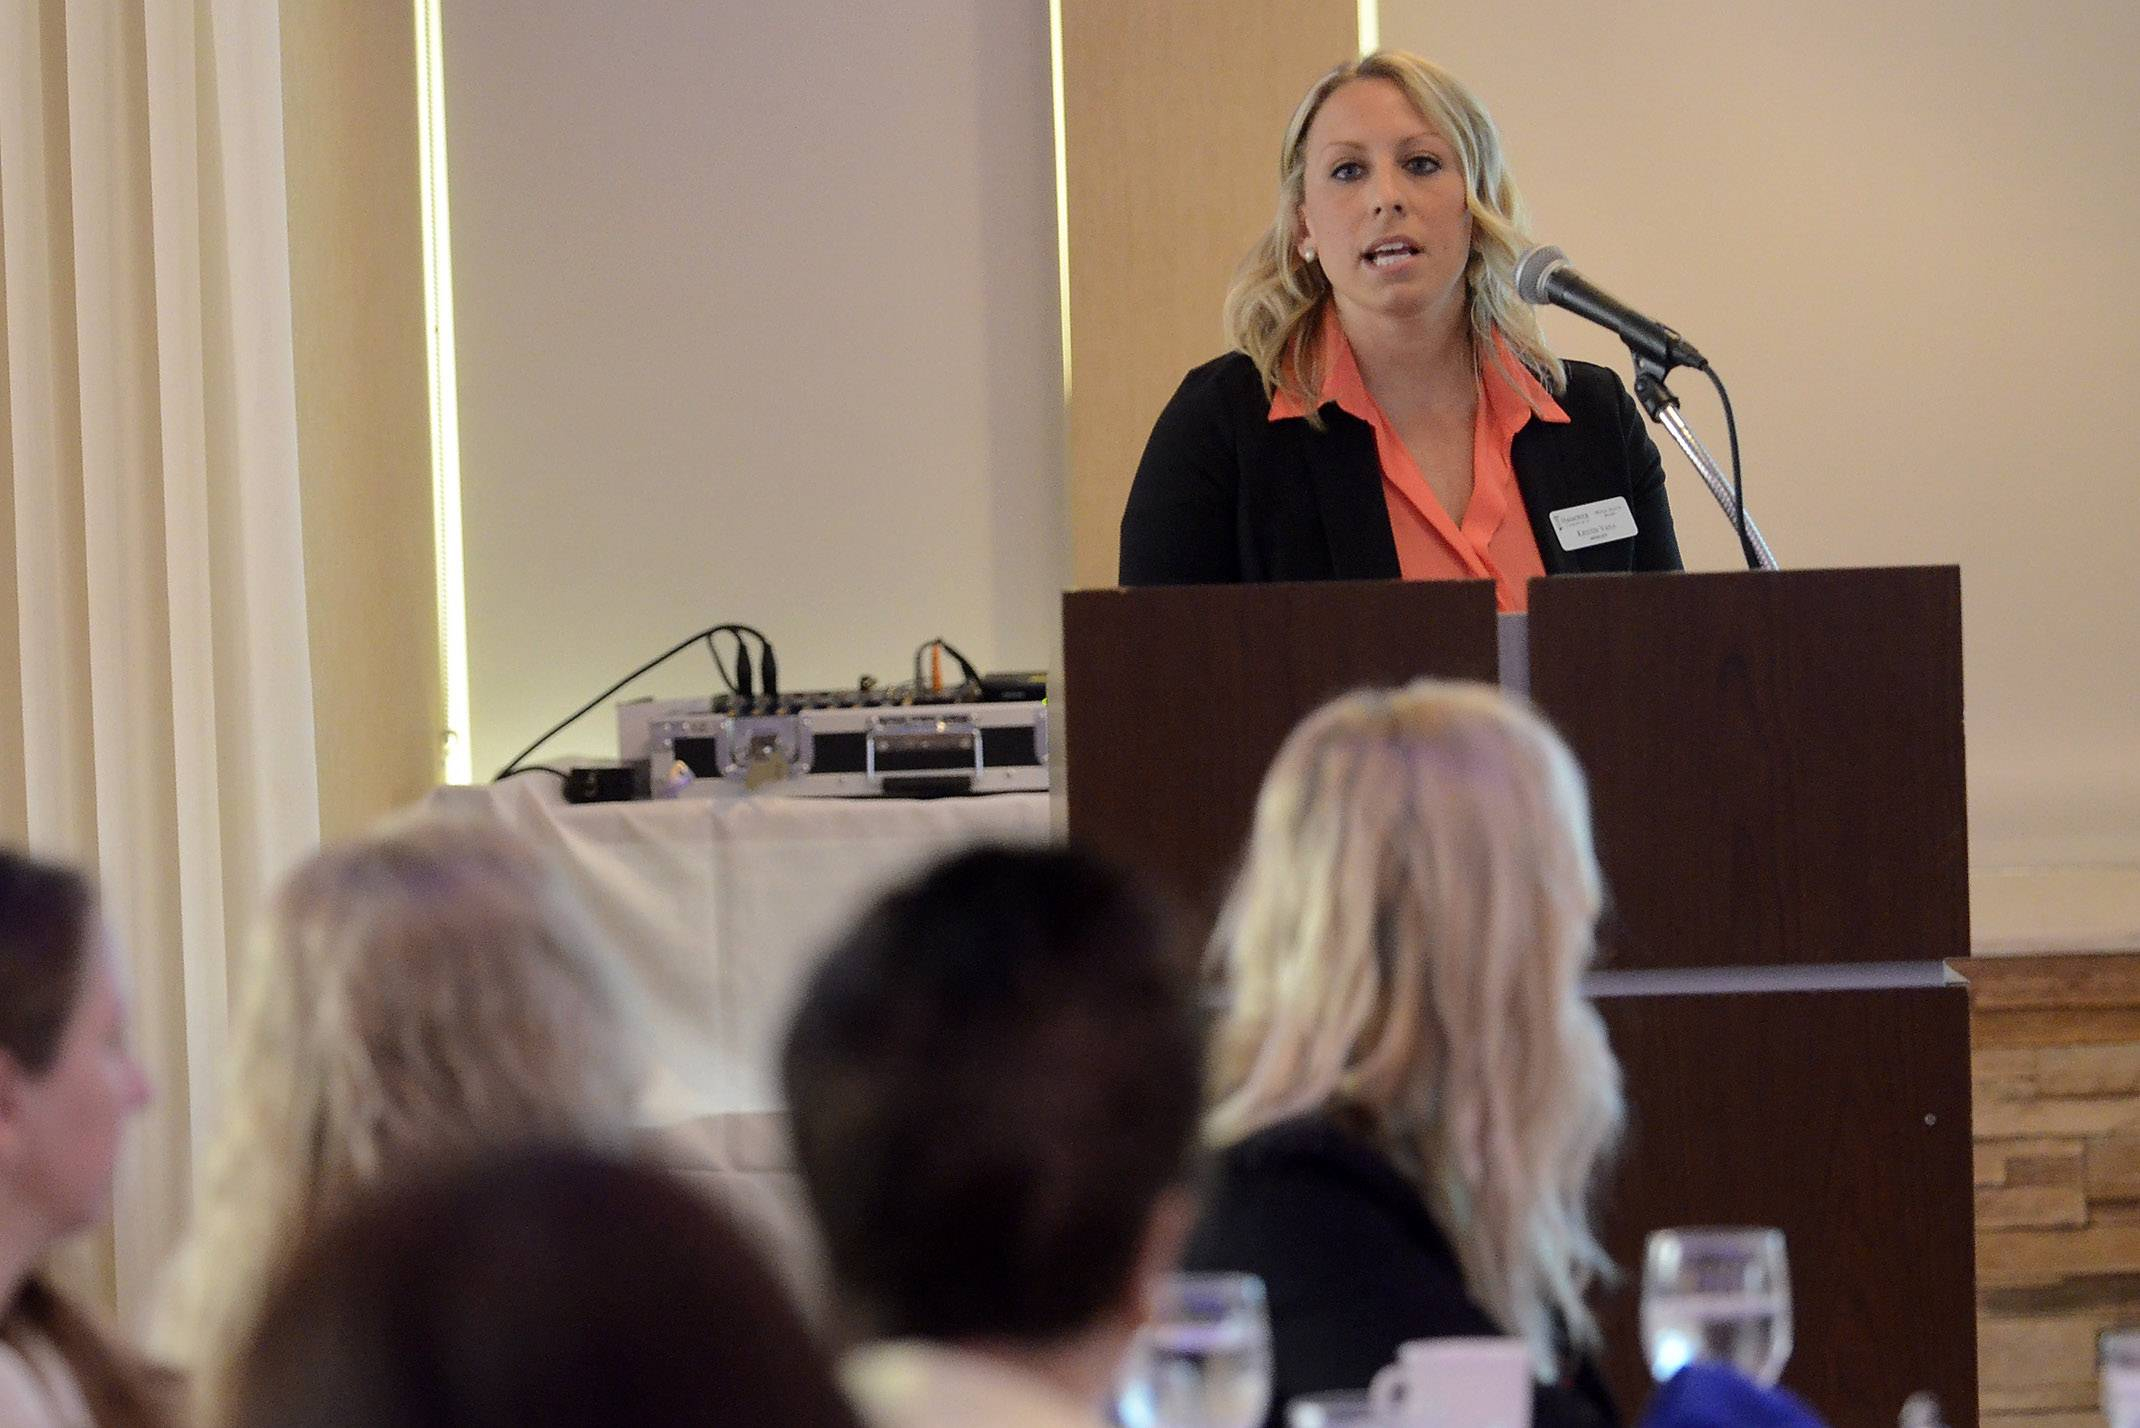 Kristin Vana, manager of the Hanover Township Mental Health Board, discussed the challenges the agency faces during an appearance Tuesday before the Schaumburg Business Association.